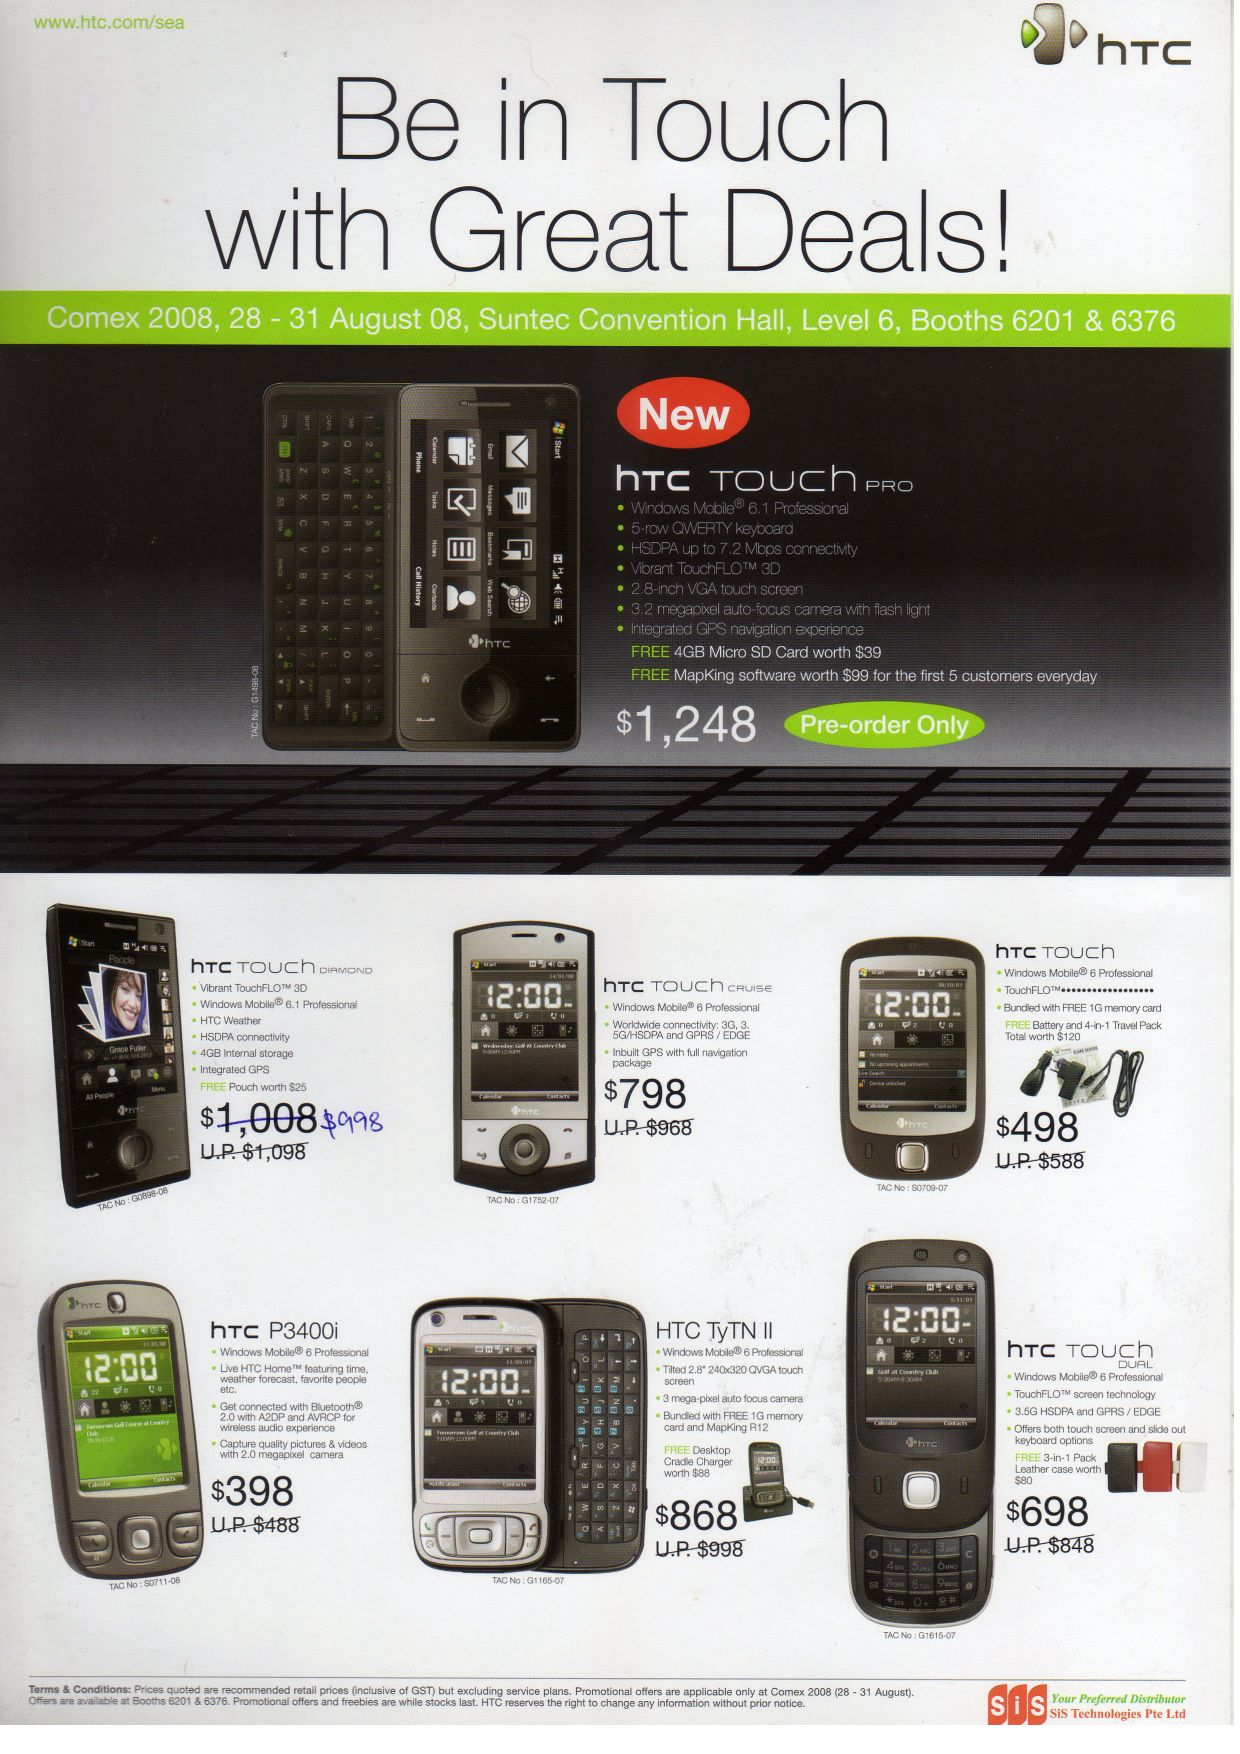 Comex 2008 price list image brochure of Htc Pdf 01